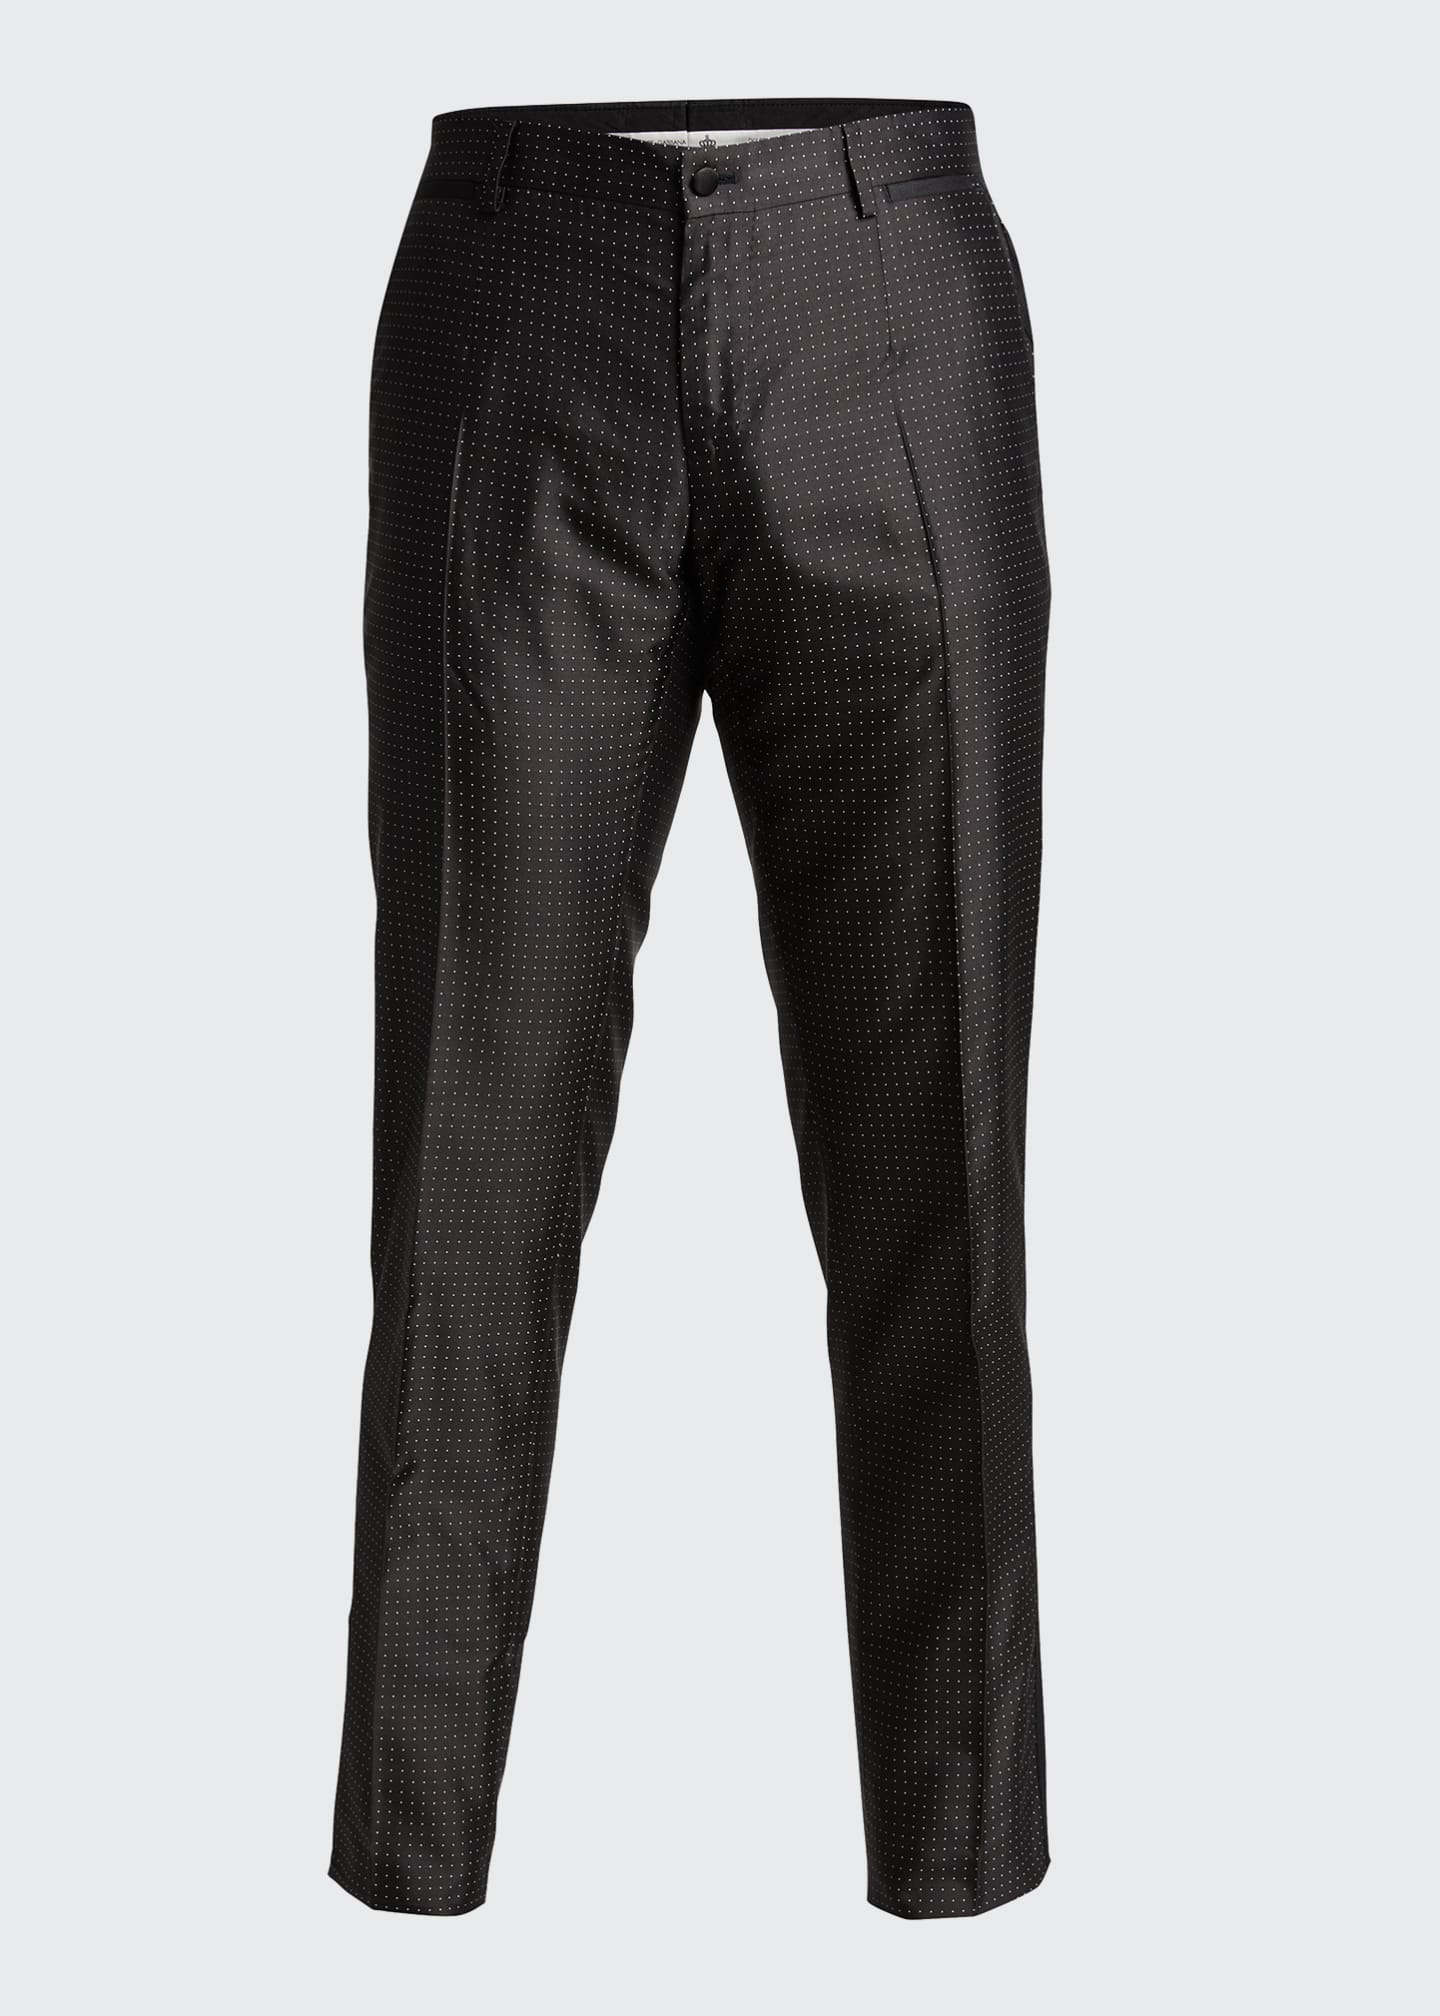 Image 5 of 5: Men's Satin Dot Evening Pants